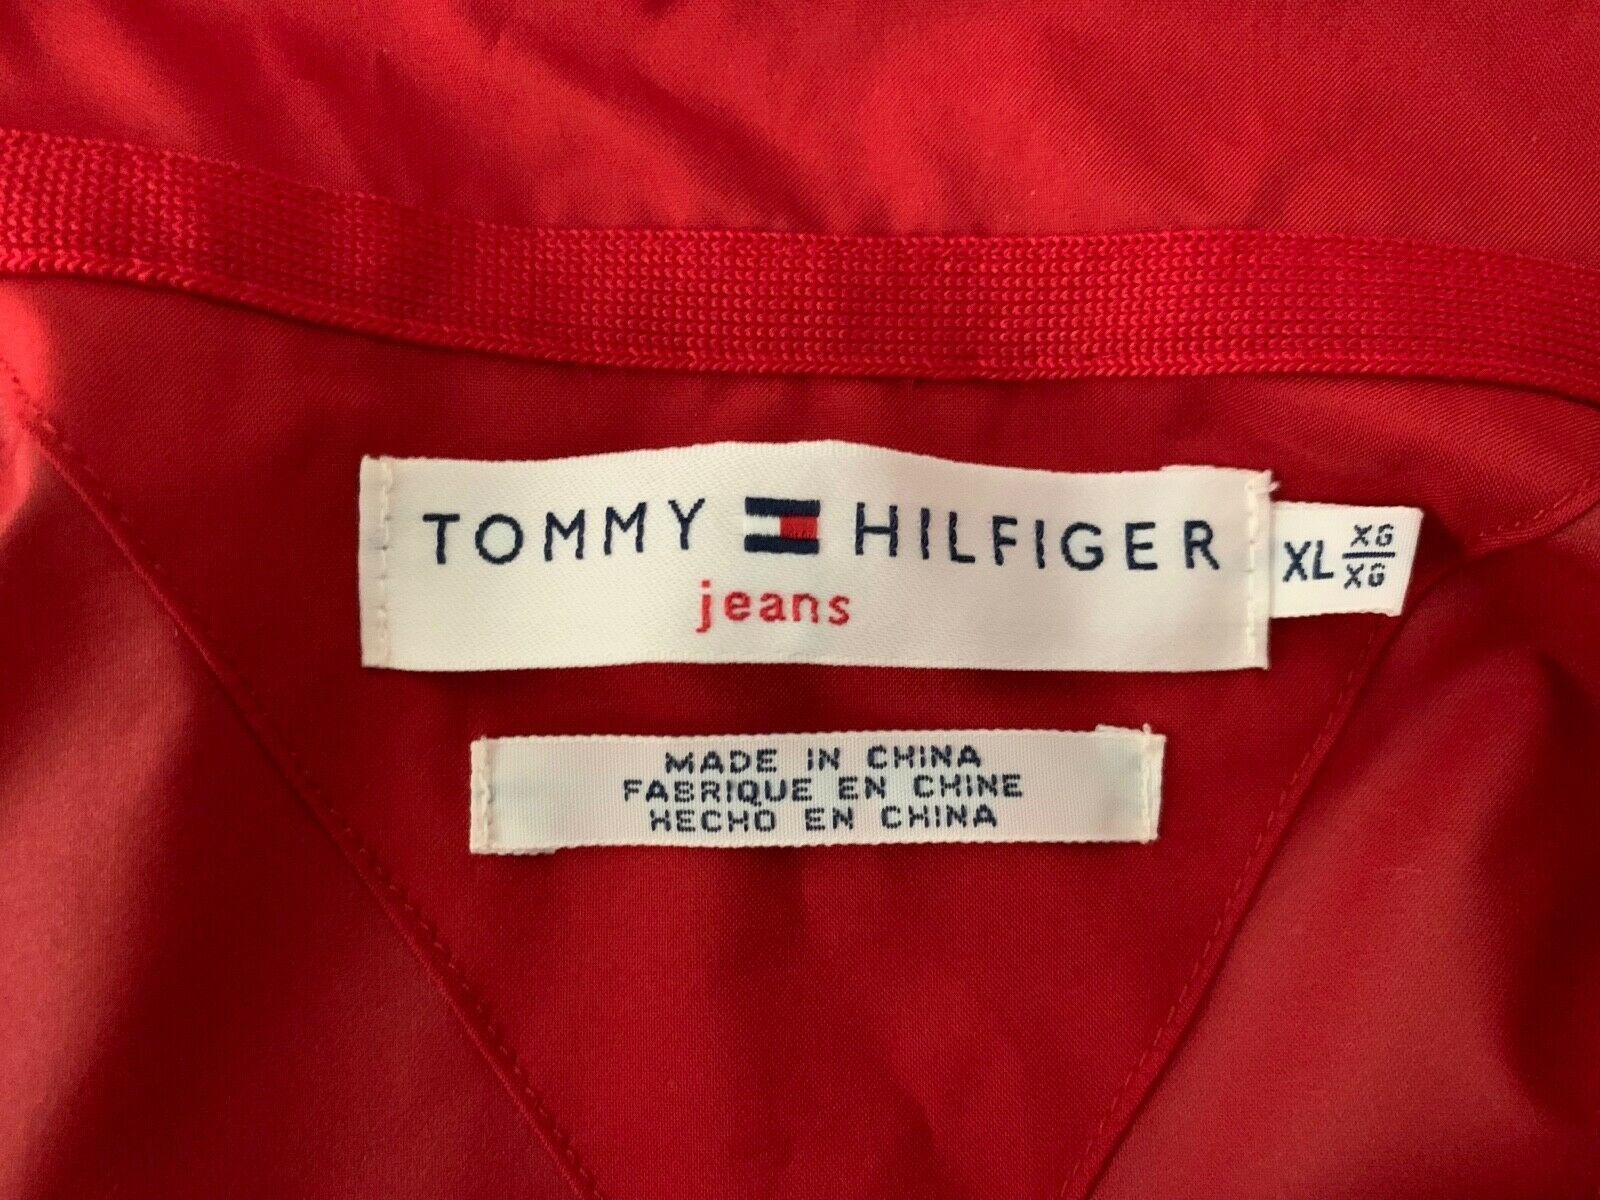 Women TOMMY HILFIGER Jeans RAIN Jacket Coat Windbreaker Pockets RED No Lining XL image 3